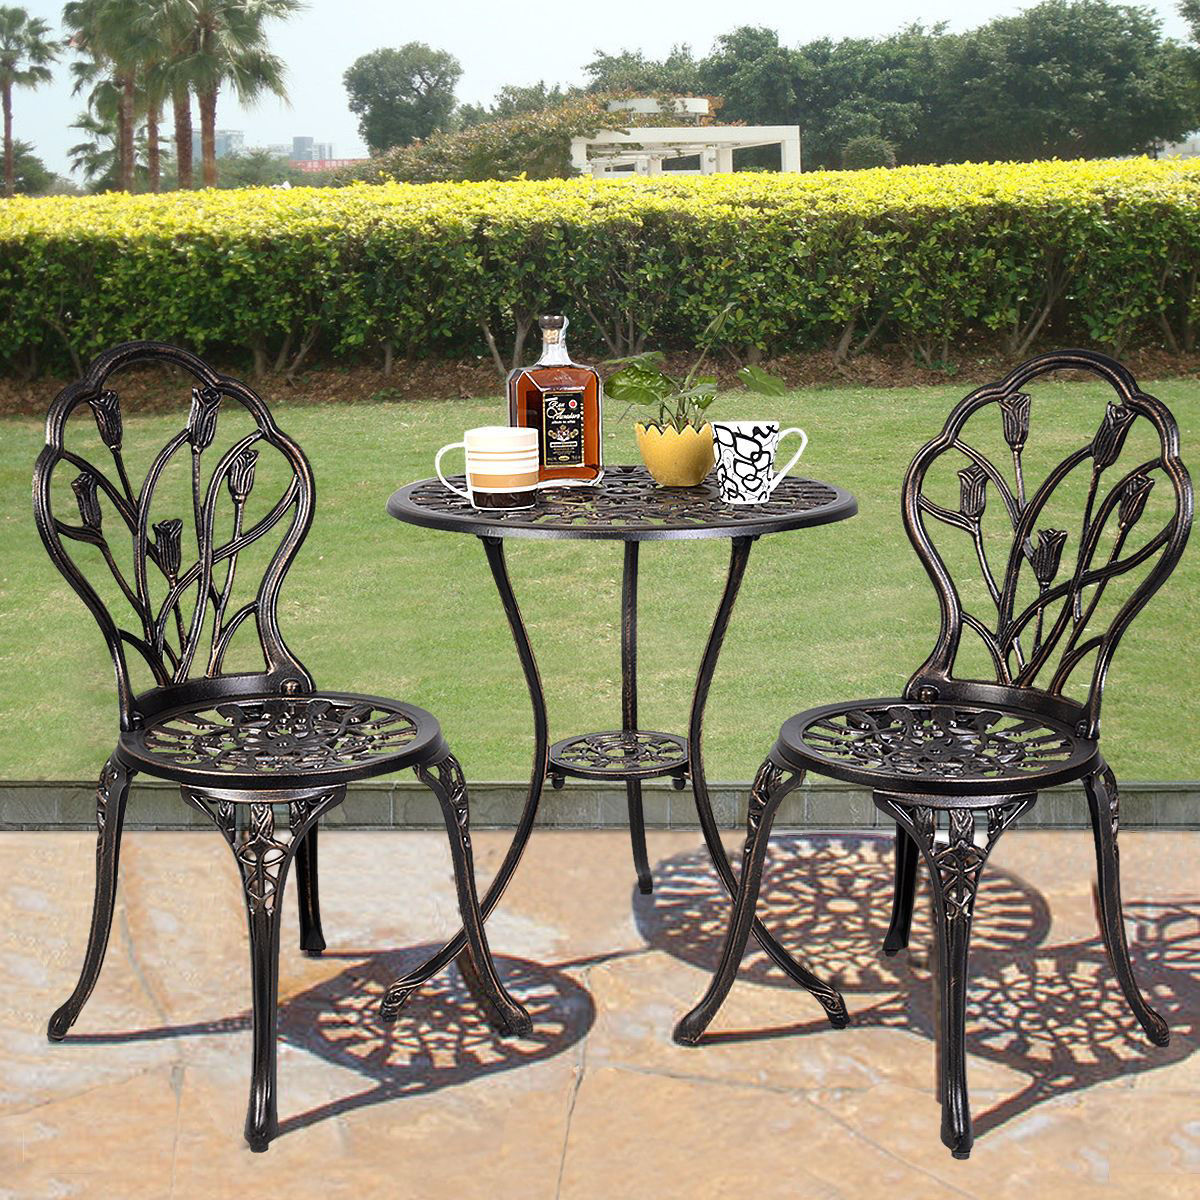 Picture of Outdoor Patio Bistro Set Tulip Design in Antique Copper